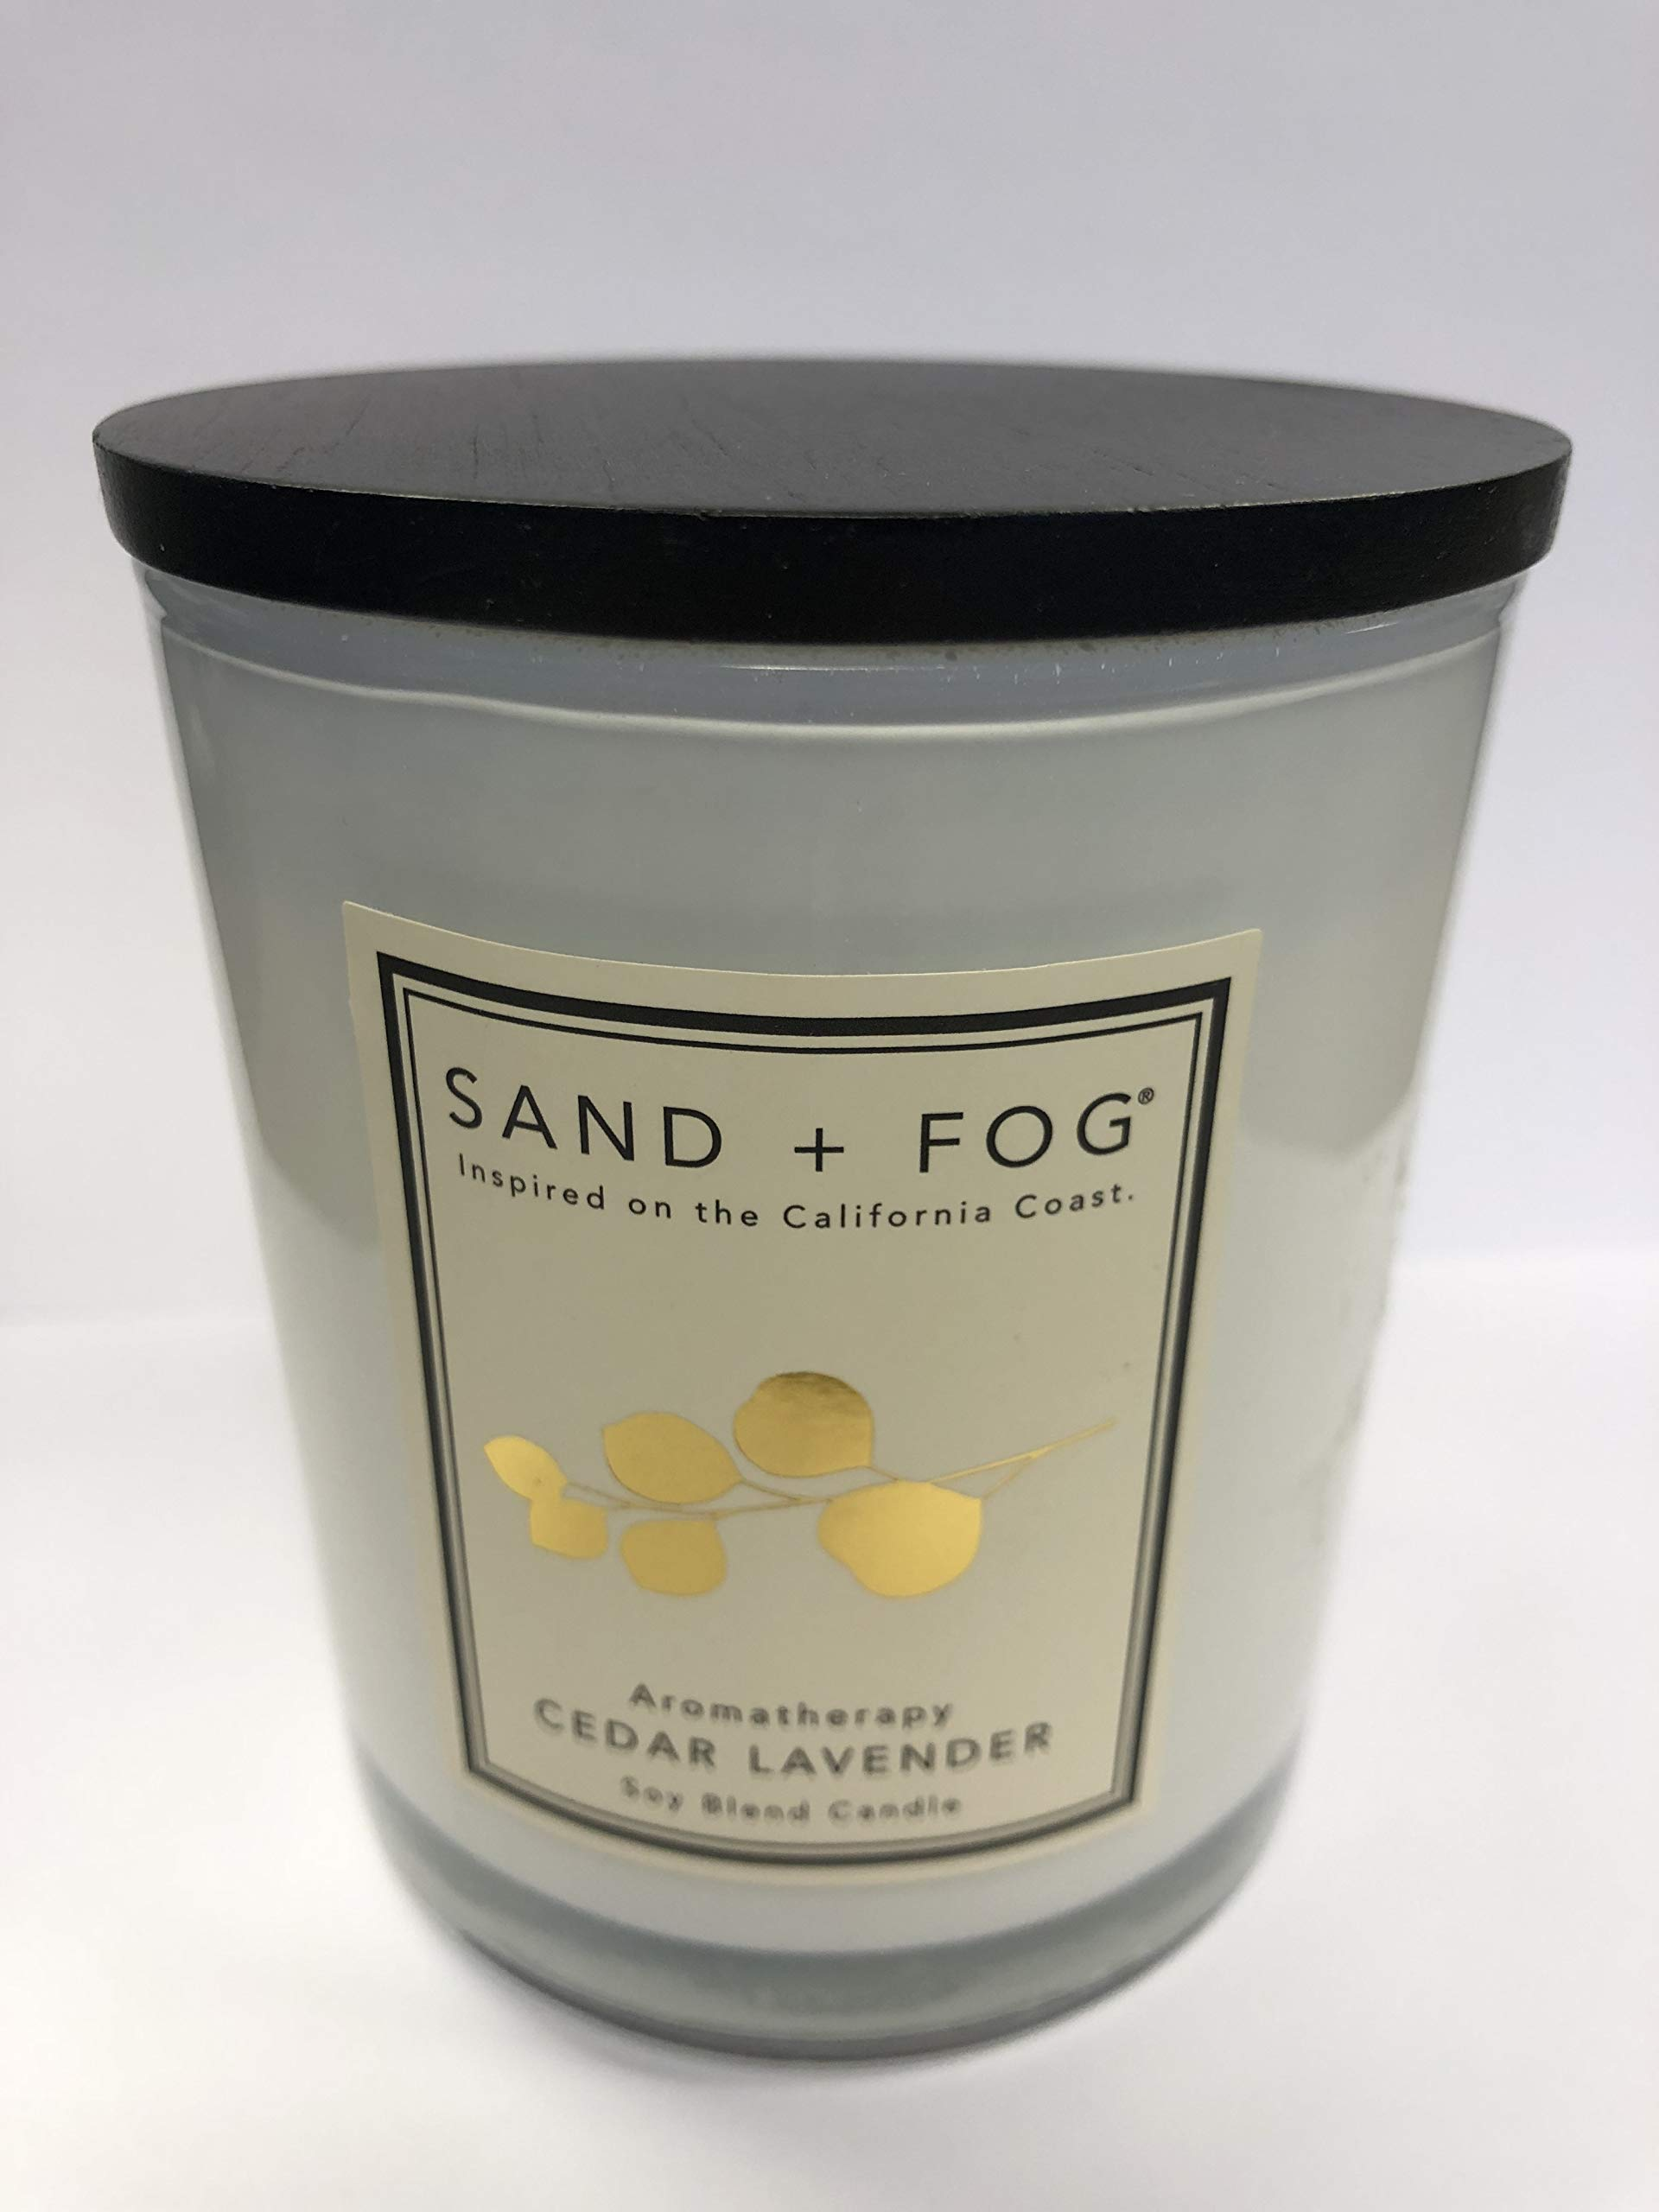 Sand + Fog Aromatherapy Cedar Lavender Soy Blend Candle 12 Oz